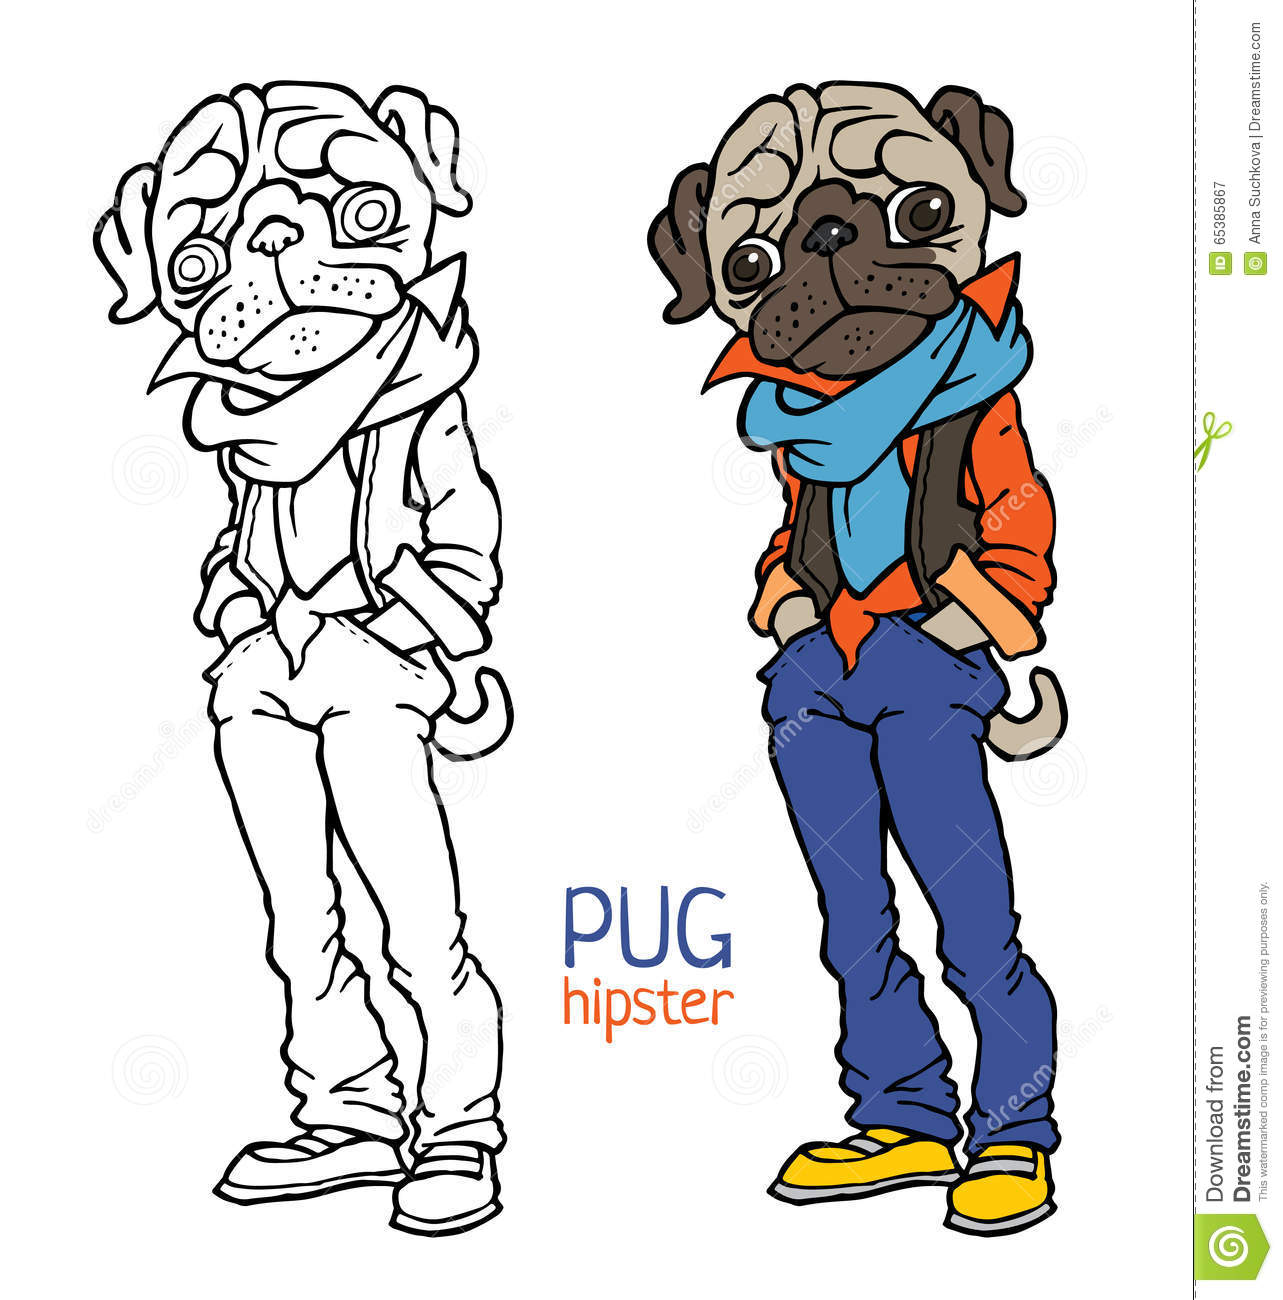 Funny Pug Dressed Like Hipster Stock Vector - Image: 65385867